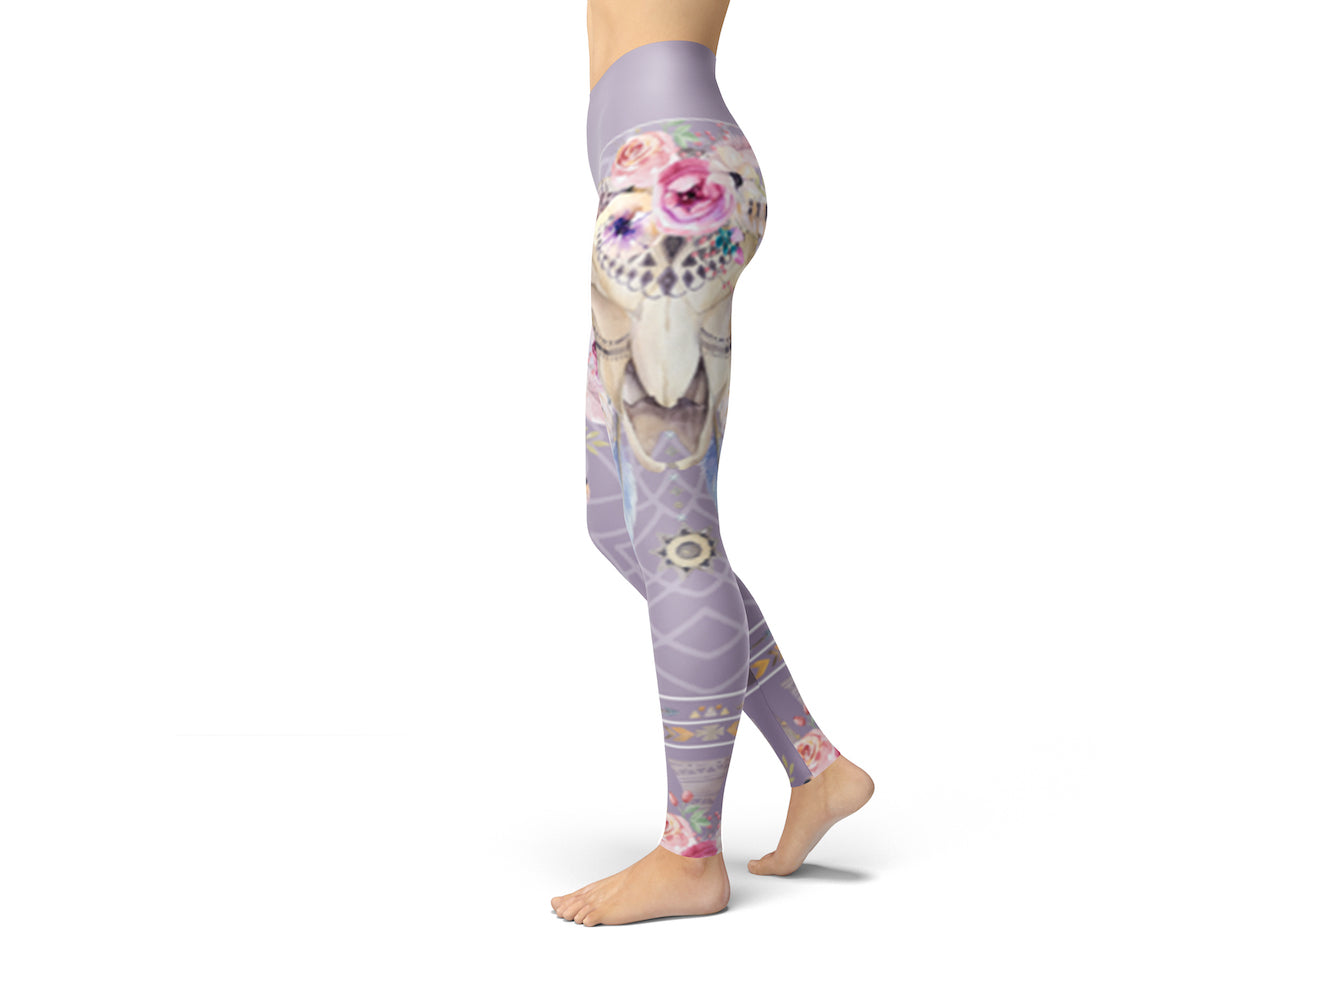 Bohemian Maeve Yoga Pants - Aloki Athletica